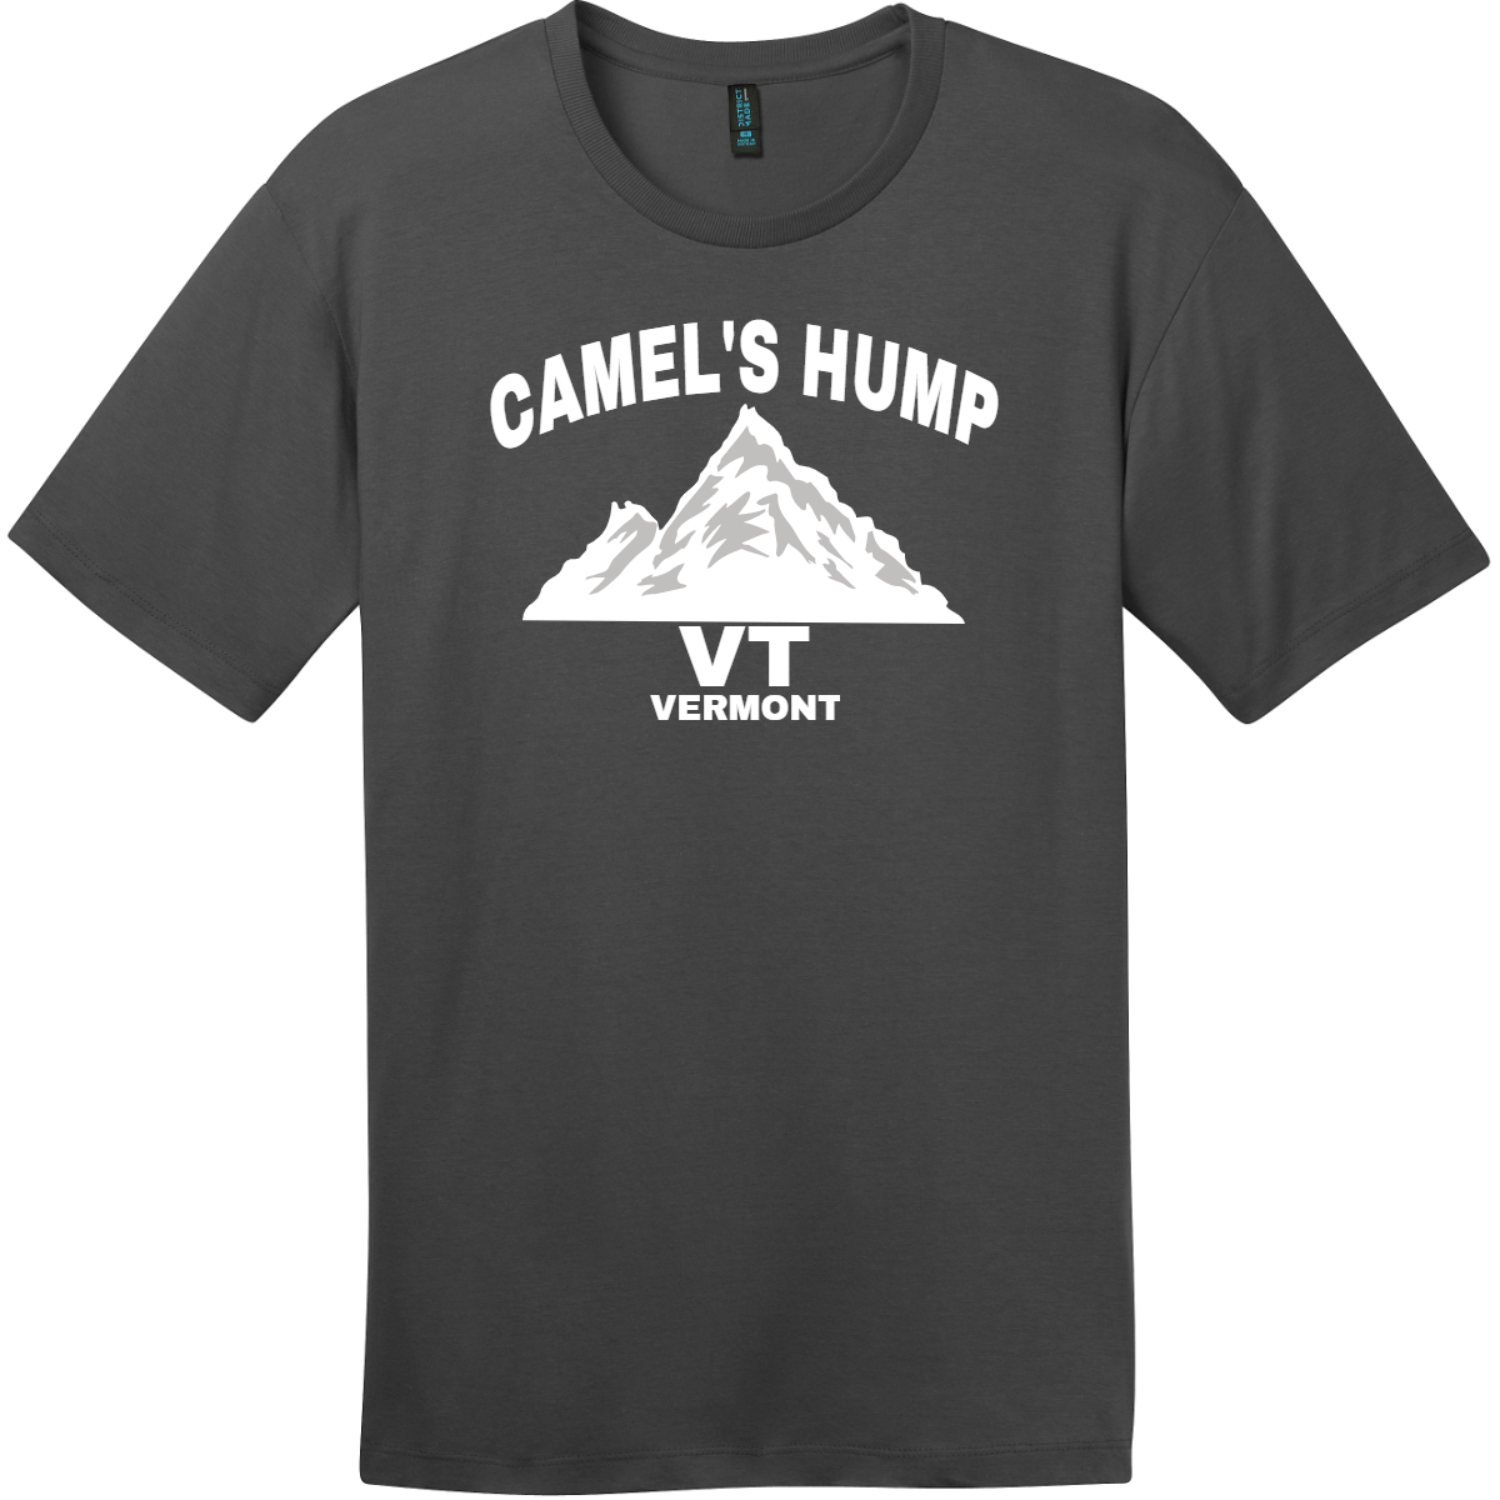 Camel's Hump Mountain Vermont T-Shirt Charcoal District Perfect Weight Tee DT104